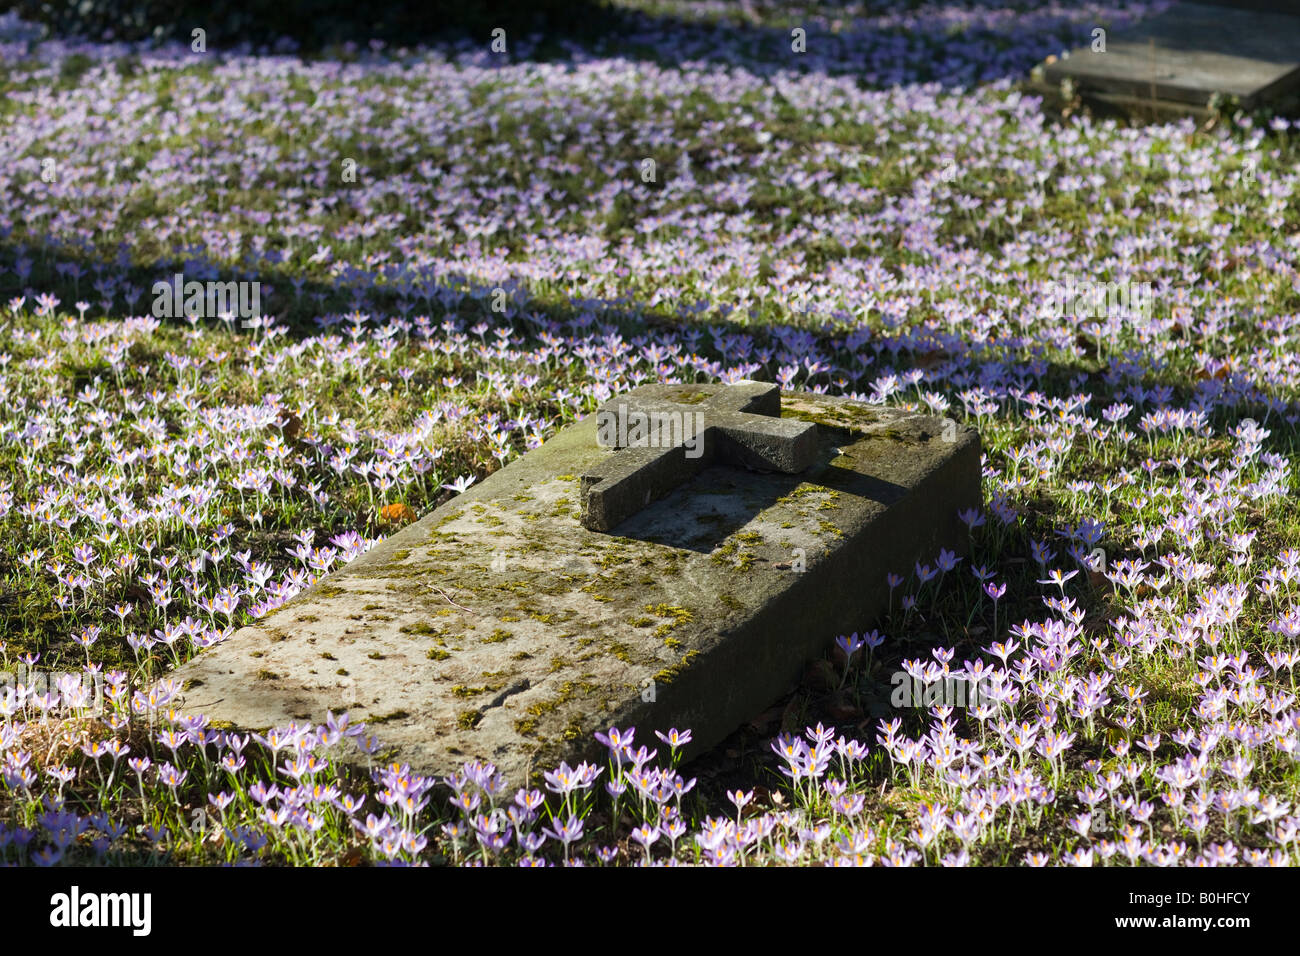 how to put flowers on a grave